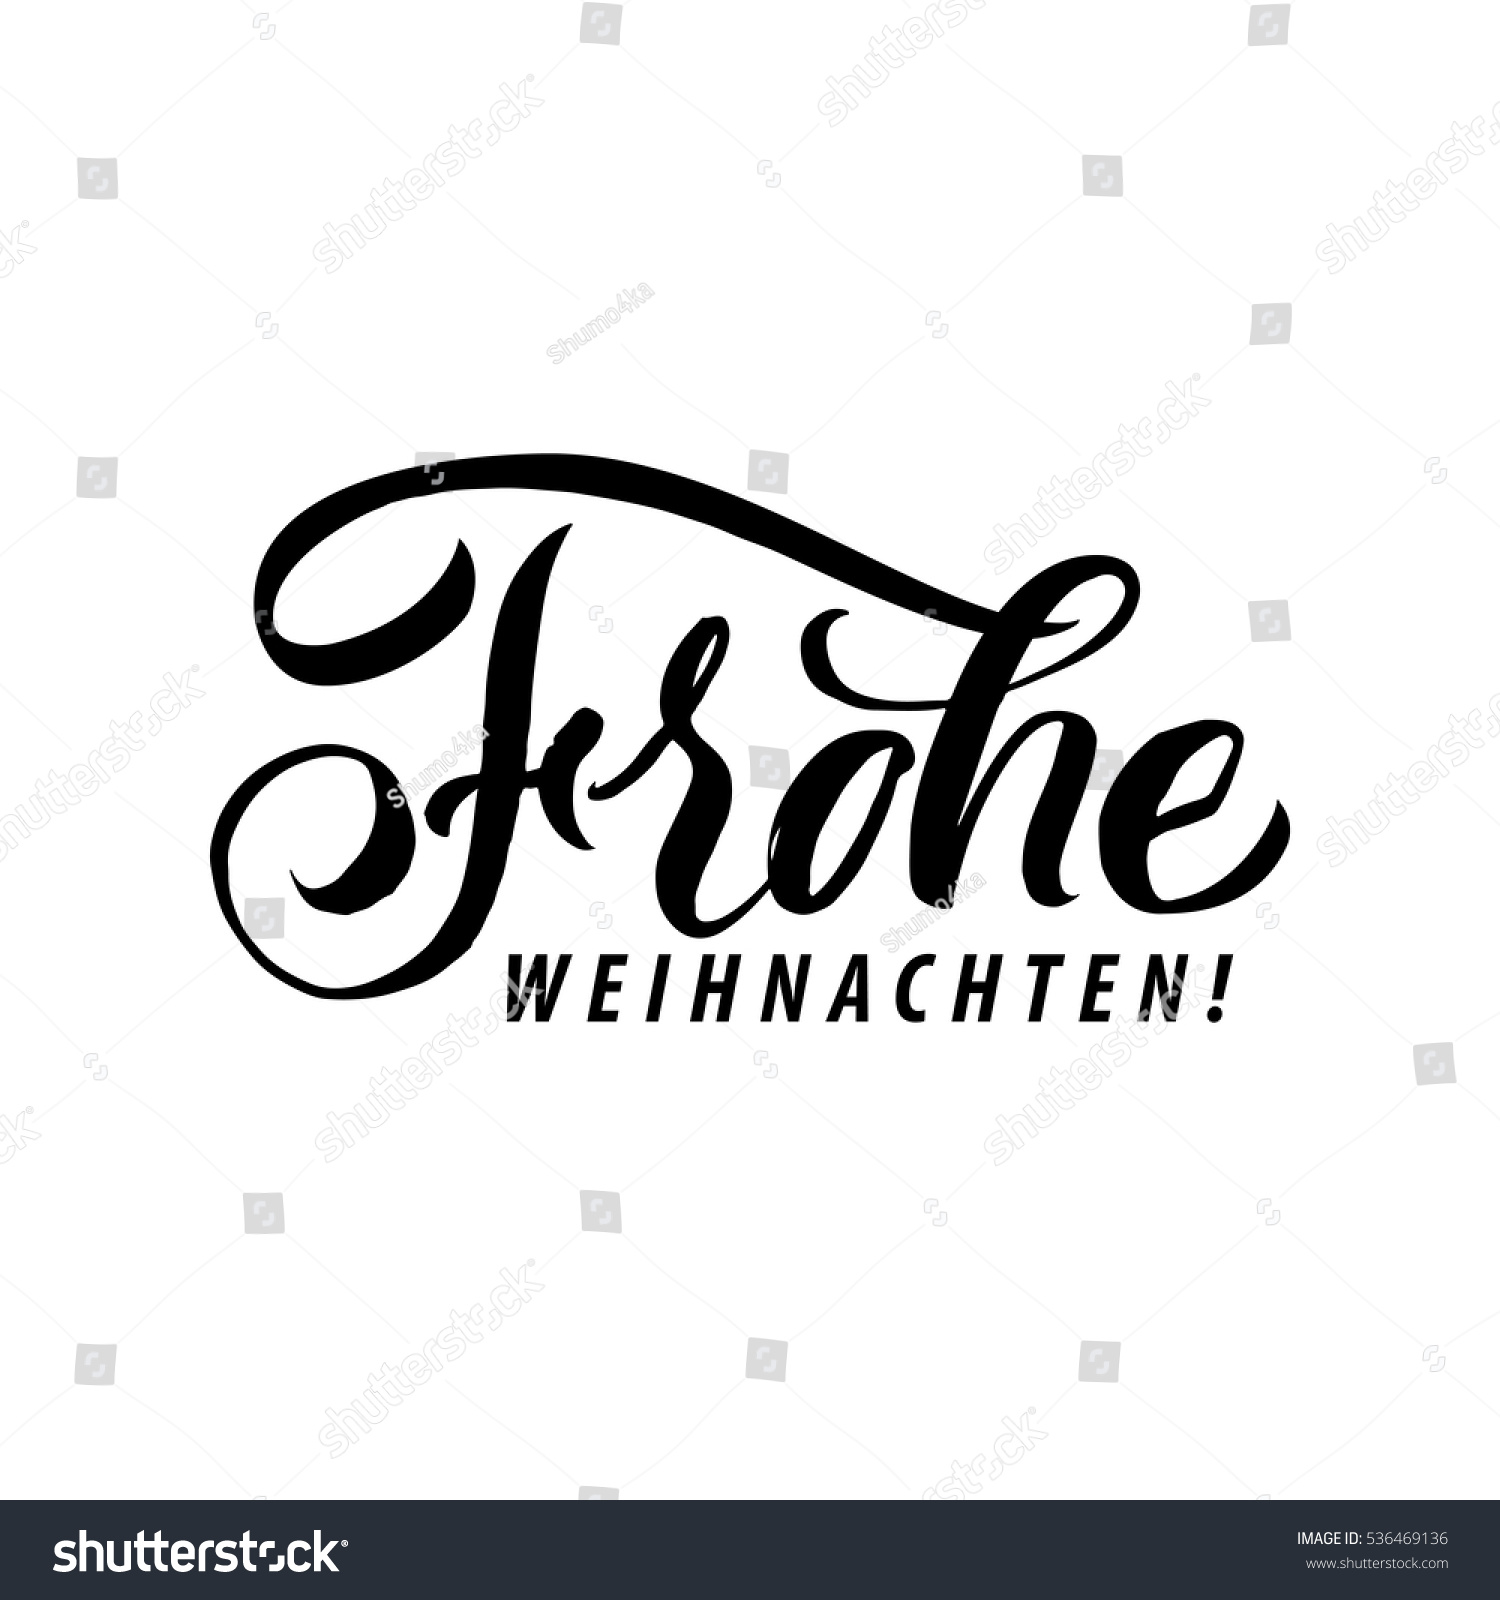 frohe weihnachten merry christmas calligraphy german stock. Black Bedroom Furniture Sets. Home Design Ideas